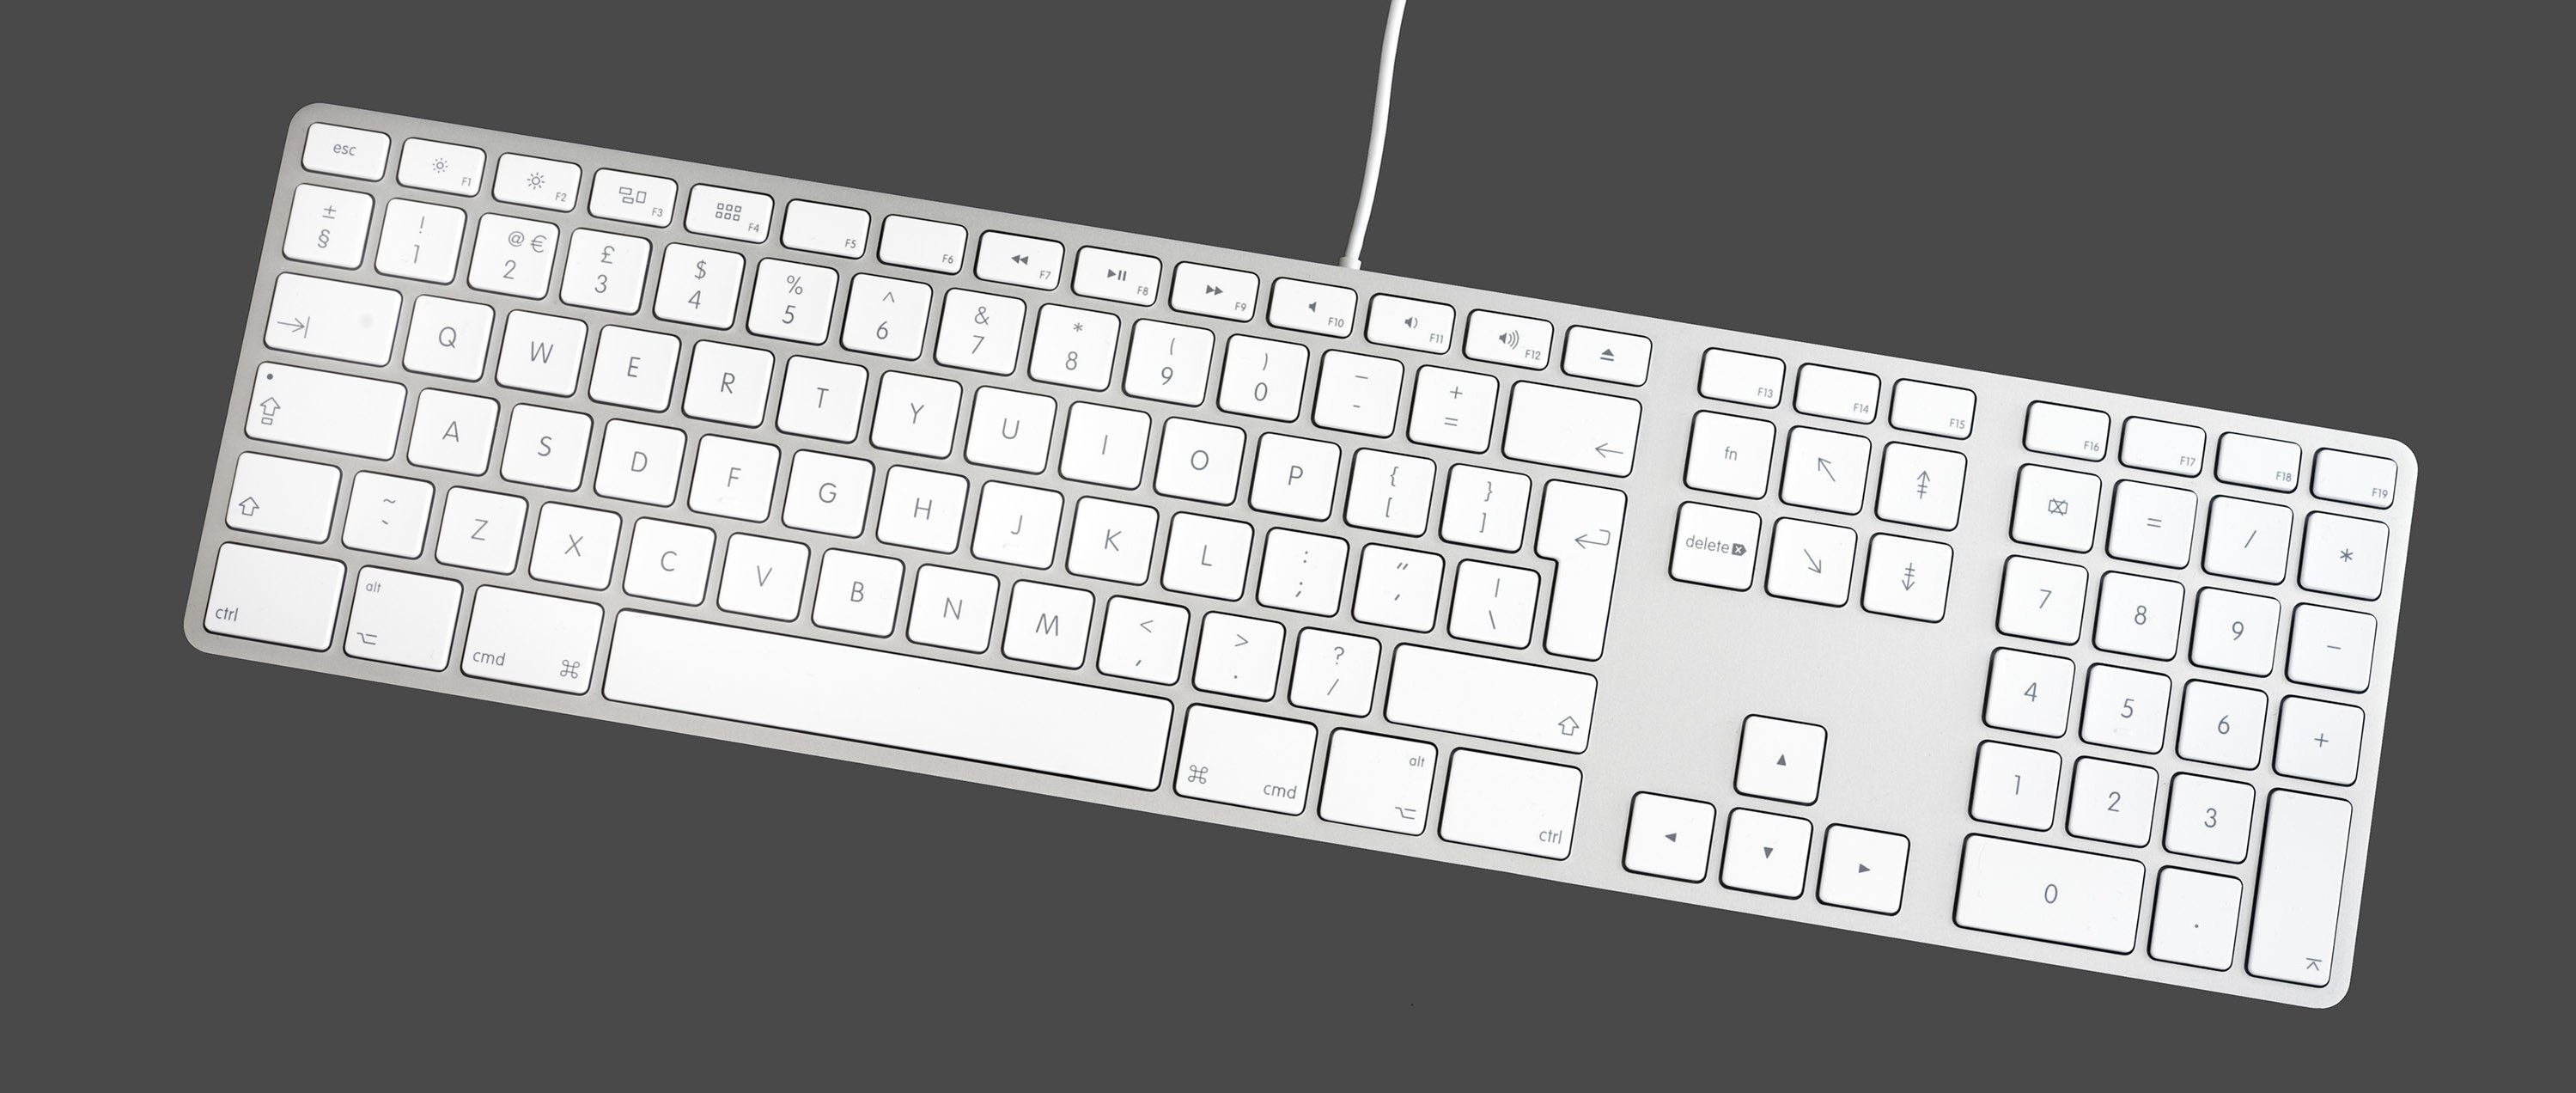 Apple Keyboard - The complete information and online sale with free  shipping. Order and buy now for the lowest price in the best online store! e11b344995e28